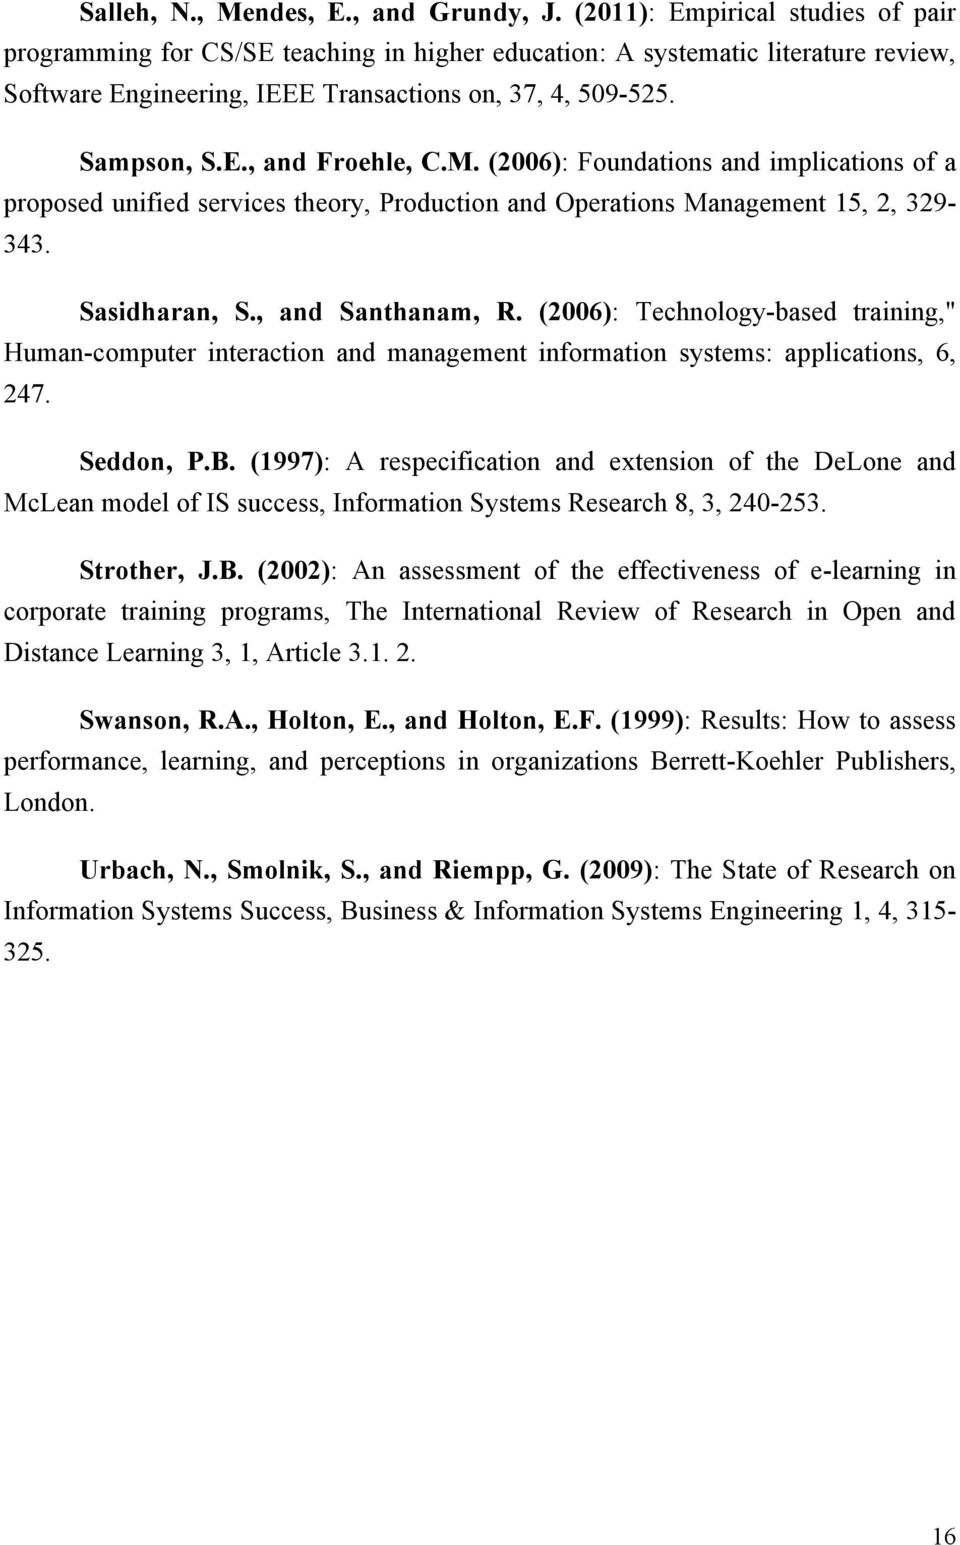 M. (2006): Foundations and implications of a proposed unified services theory, Production and Operations Management 15, 2, 329-343. Sasidharan, S., and Santhanam, R.